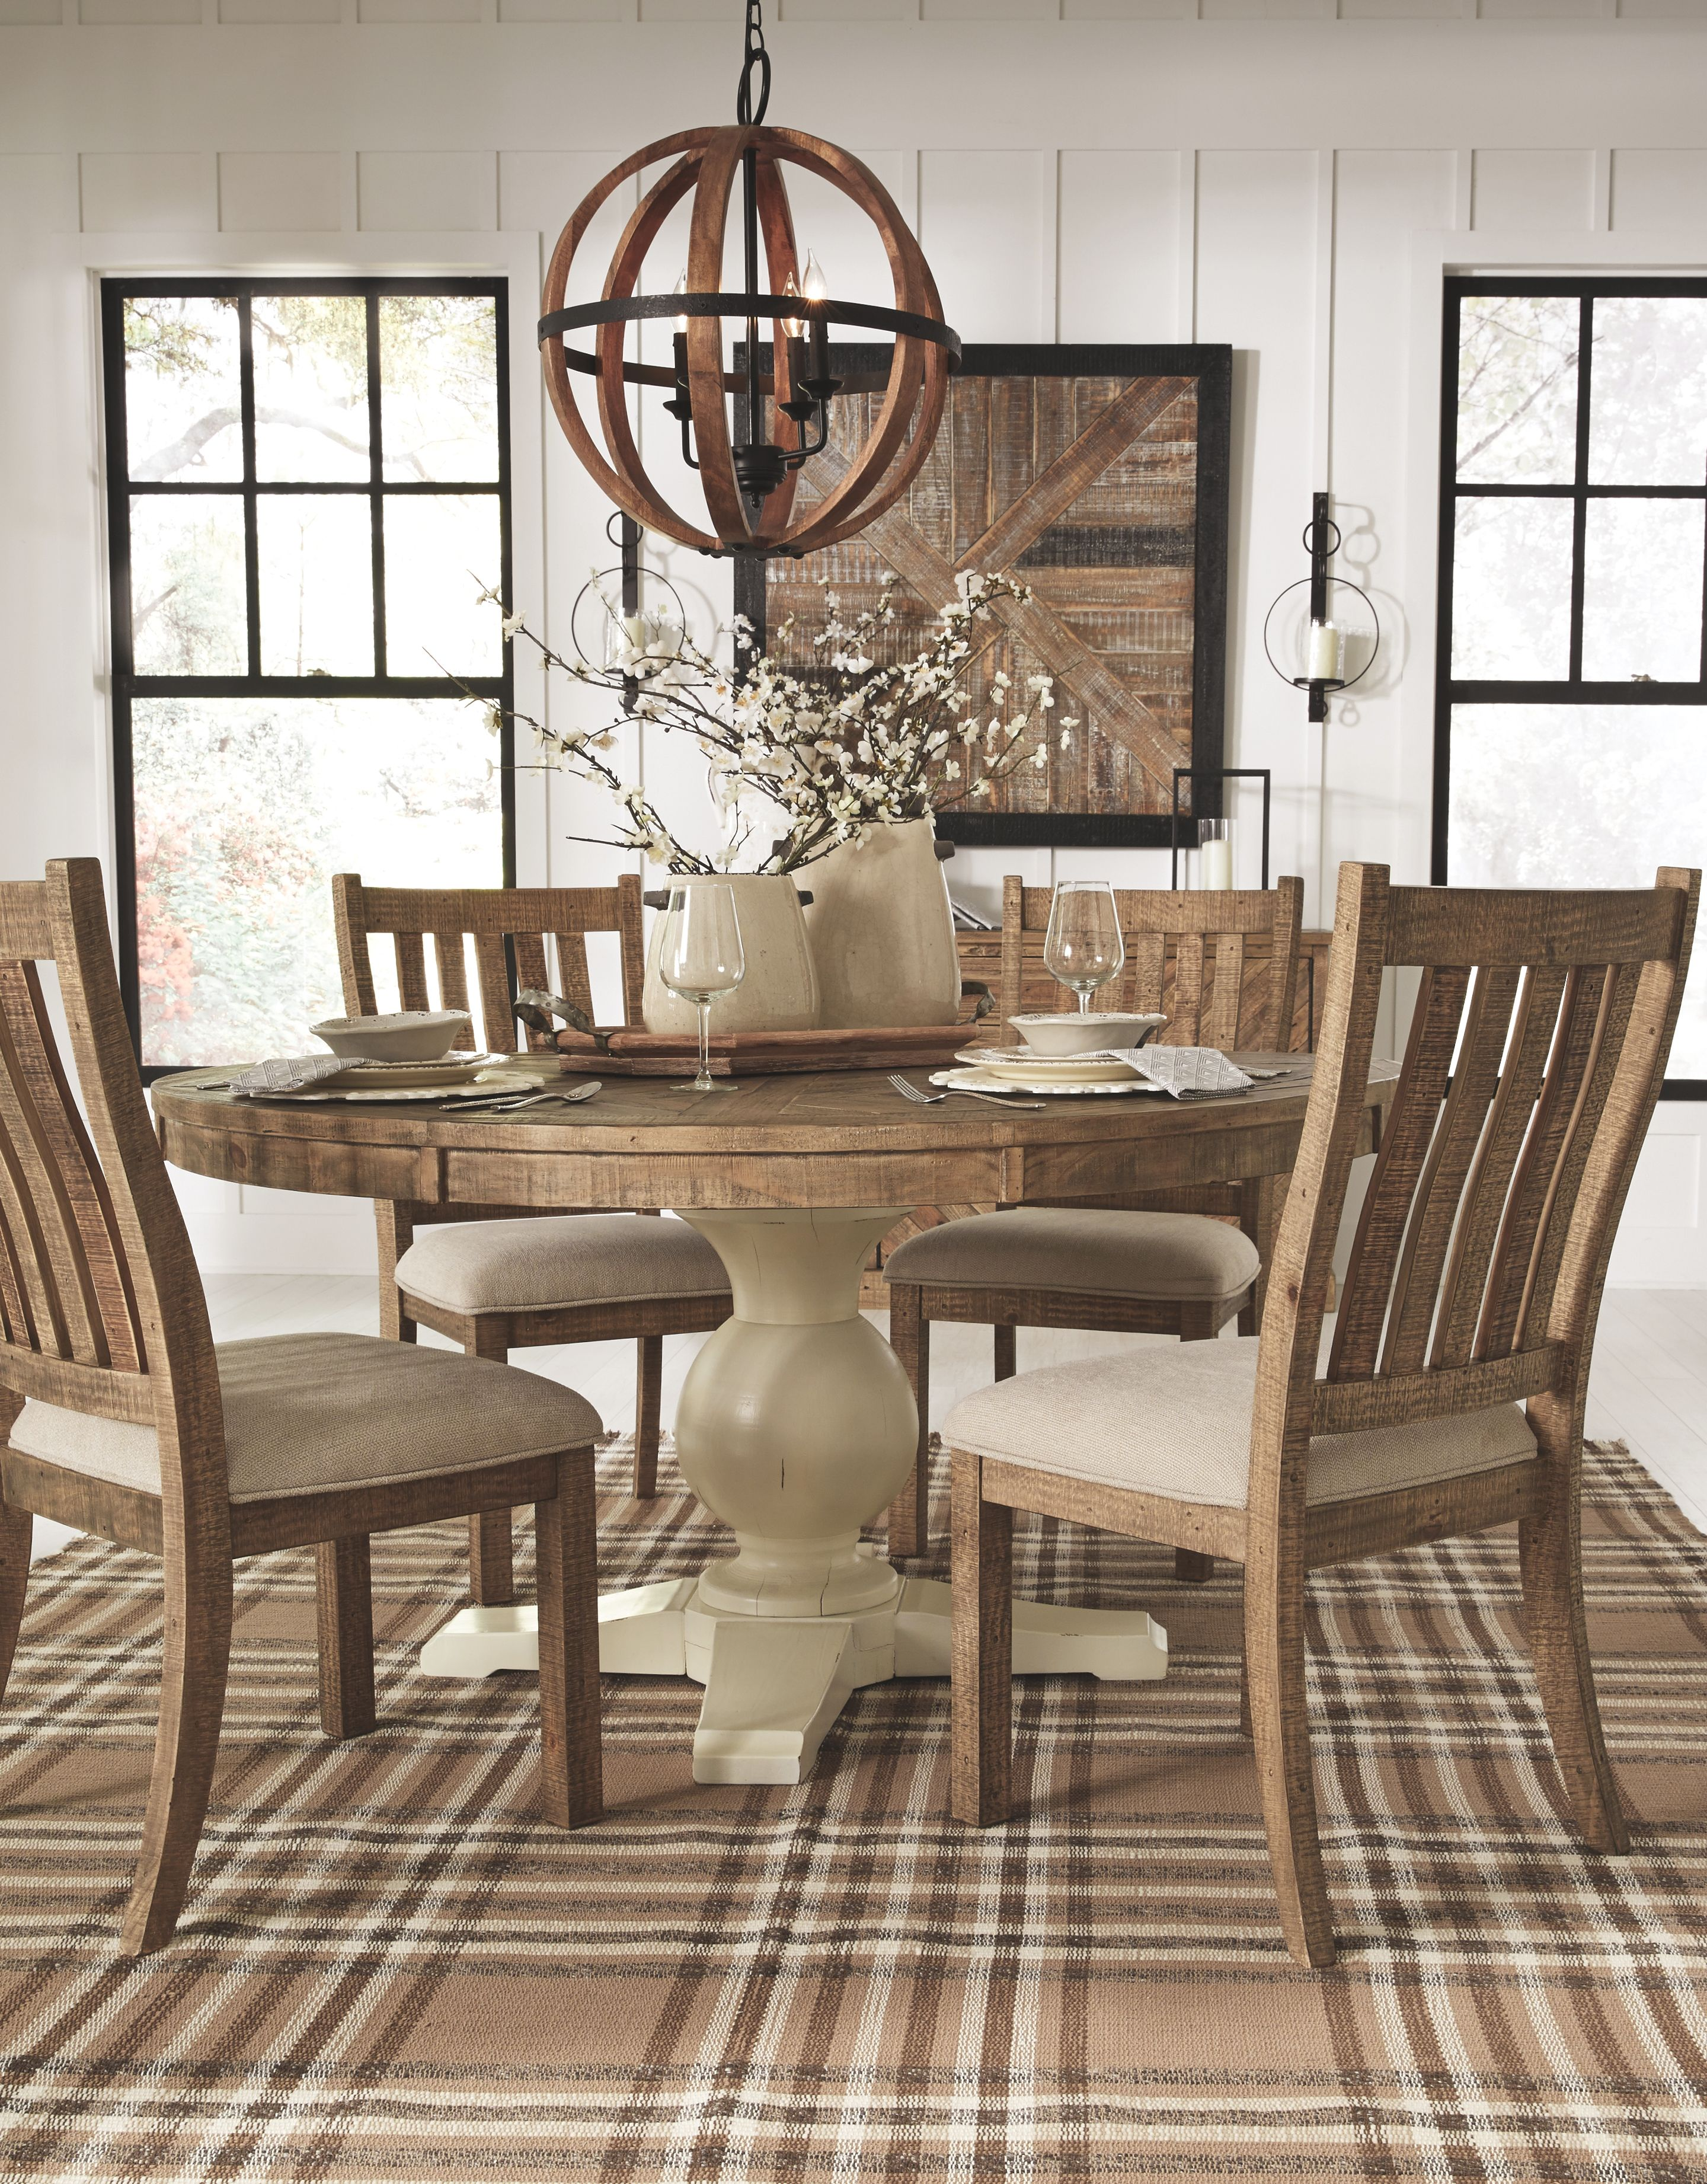 Grindleburg Dining Room Chair Set Of 2 Light Brown